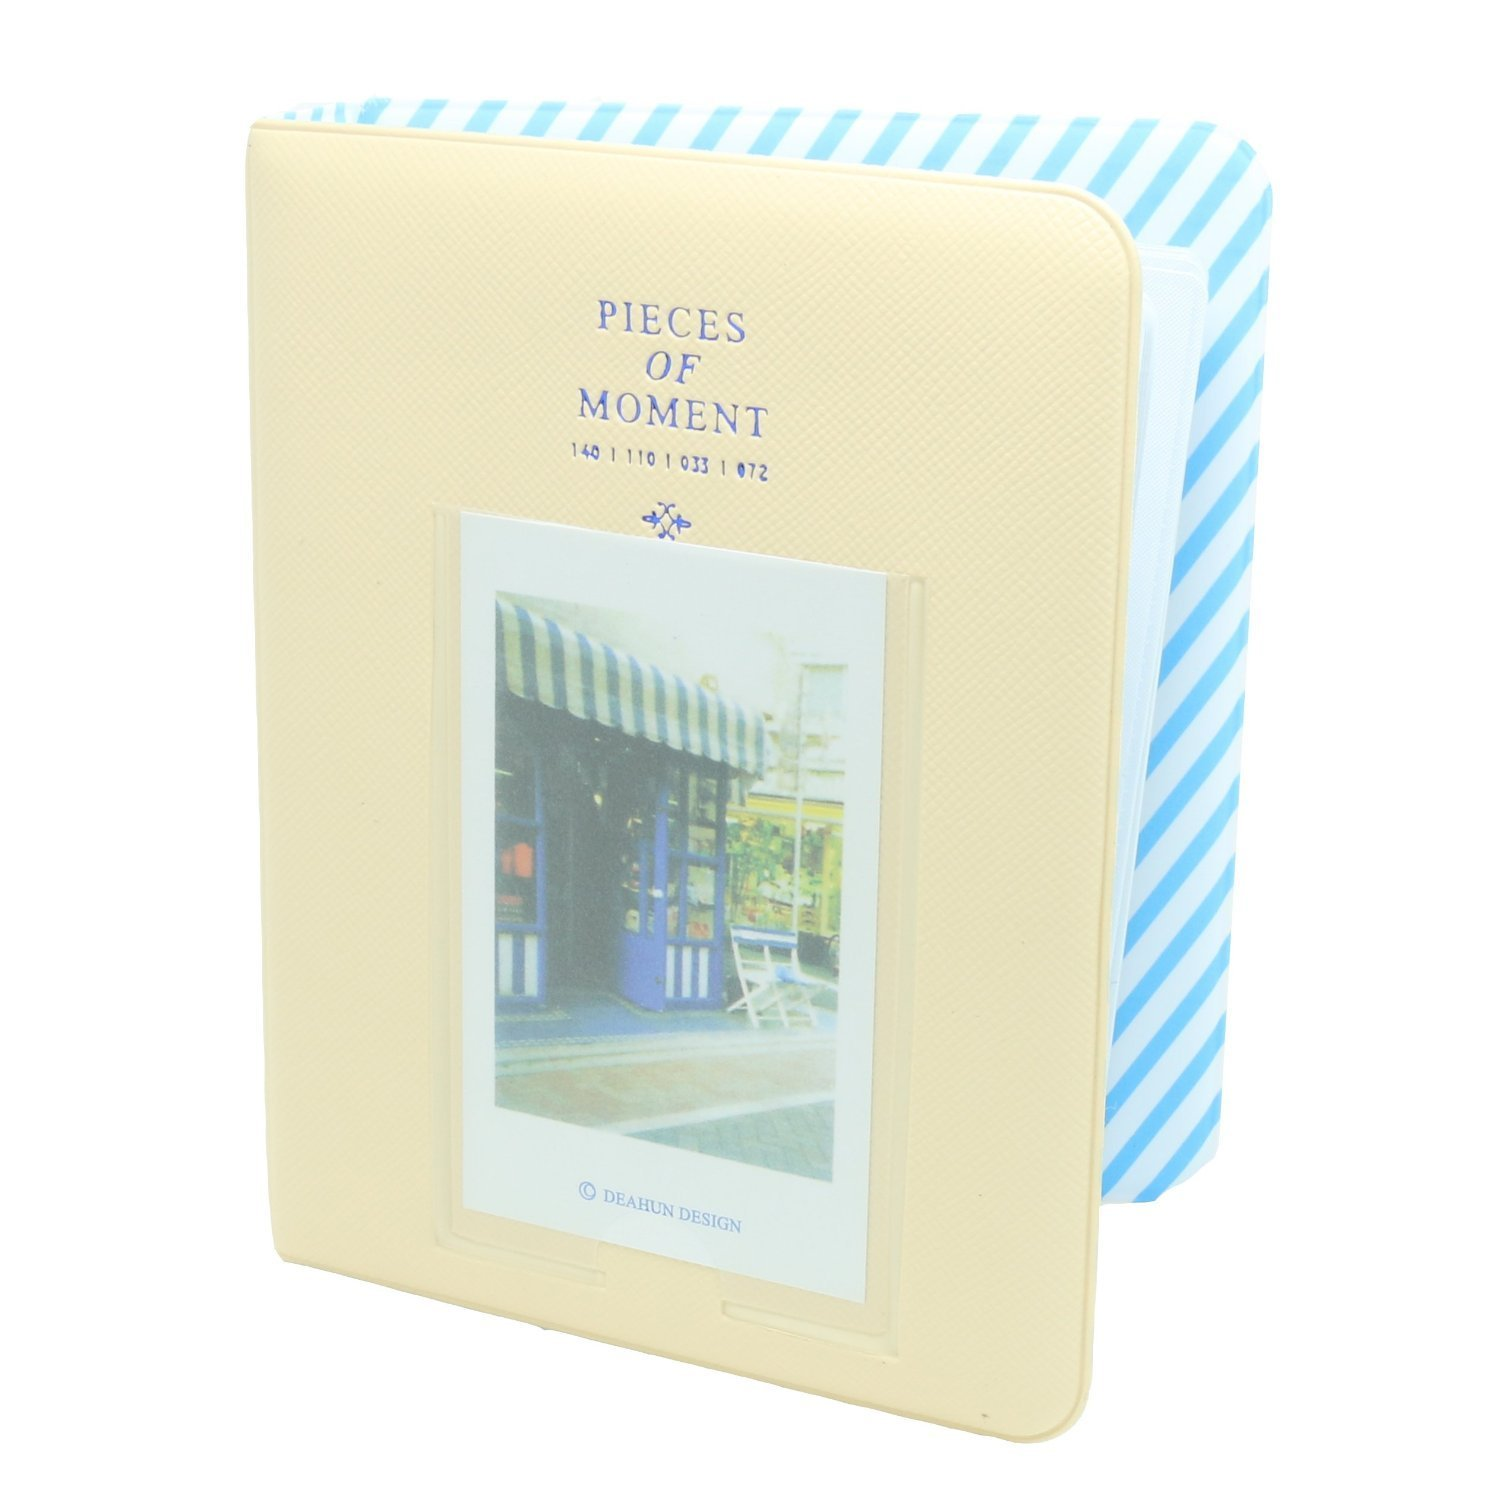 [Fuji Instax Mini Photo Album] -- CAIUL Pieces Of Moment Book Album For Films Of Instax Mini 7s 70 8 25 50s 90/ Pringo 231/ Fujifilm Instax SP-1/ Polaroid PIC-300P/ Polaroid Z2300 (64 Photos, Pink) Caiul Digital Products Co. Ltd caiulpinkBook